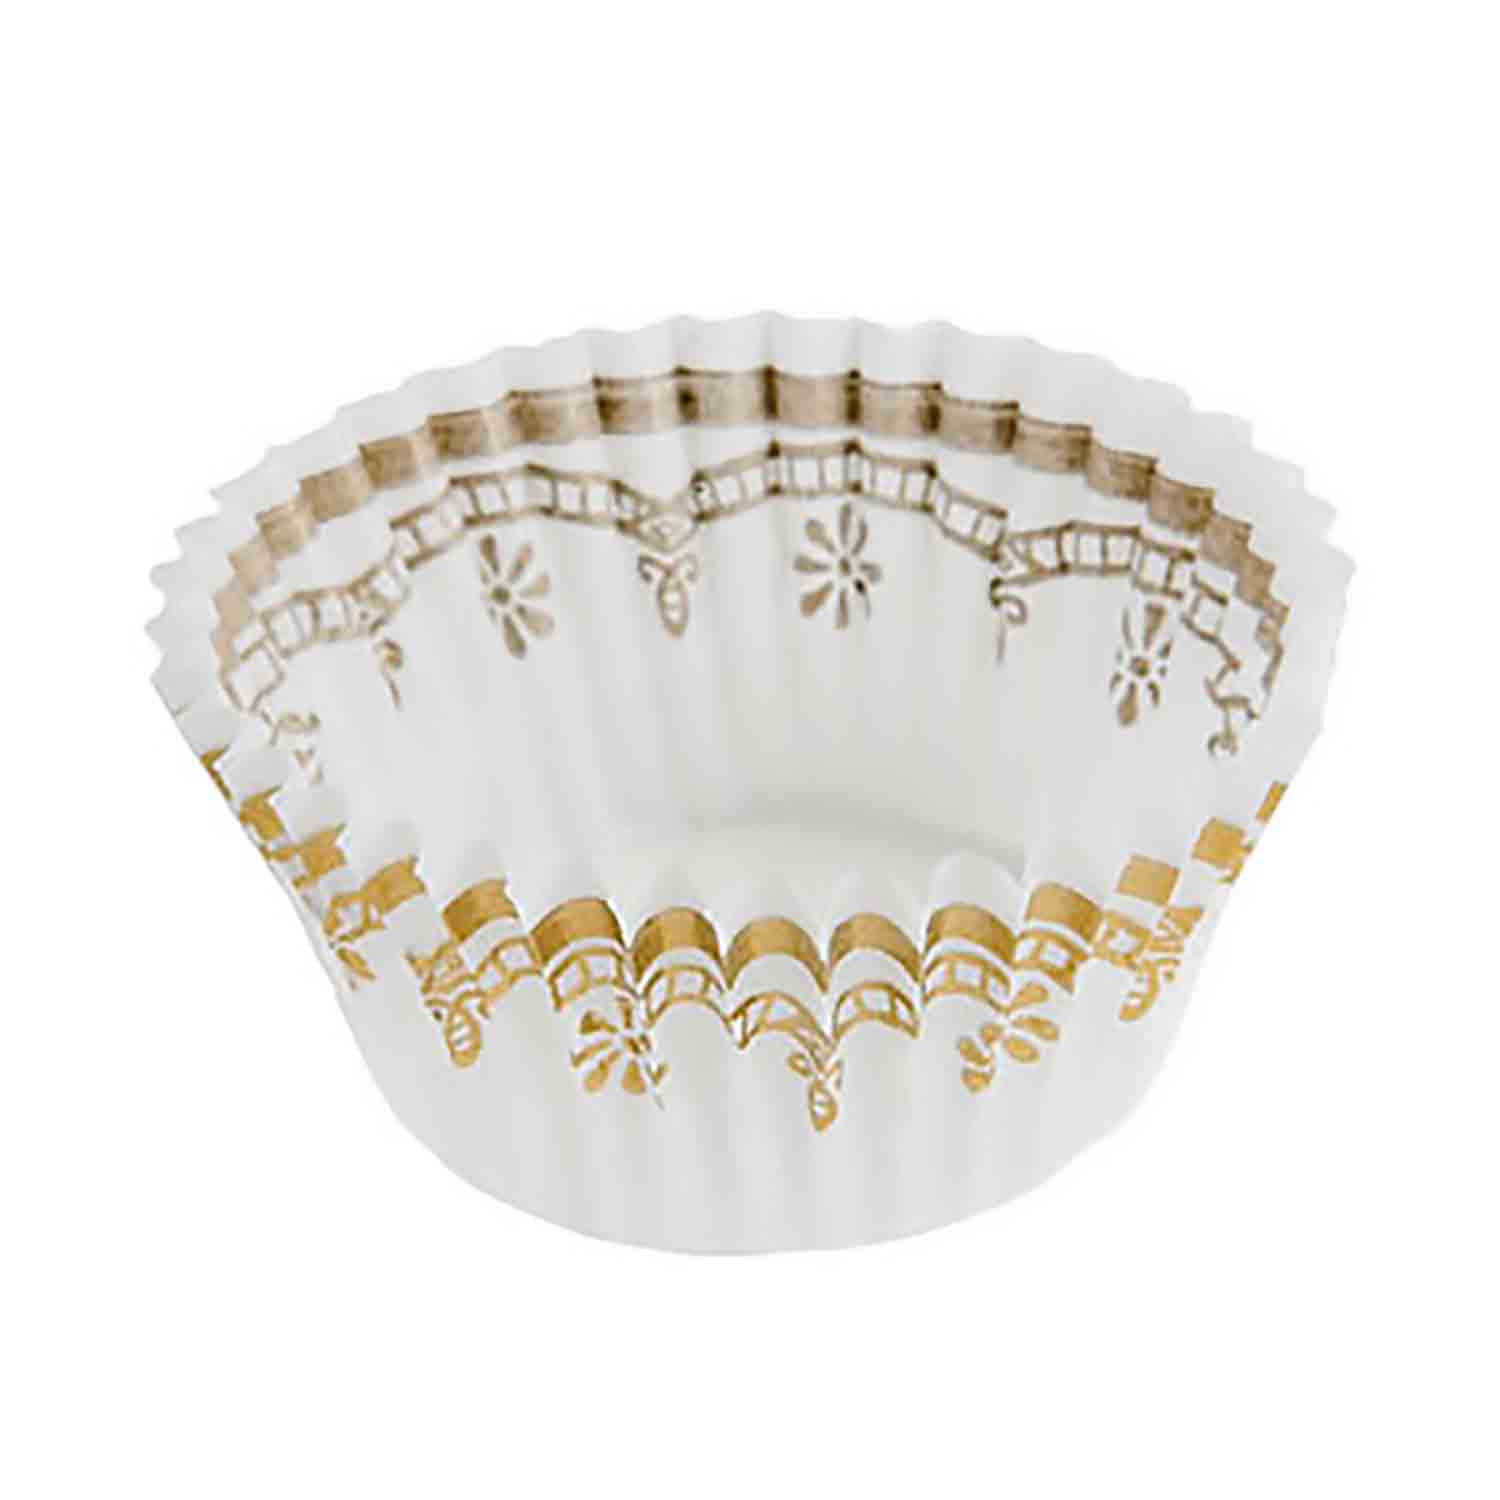 Candy Cup - White with Gold Accents